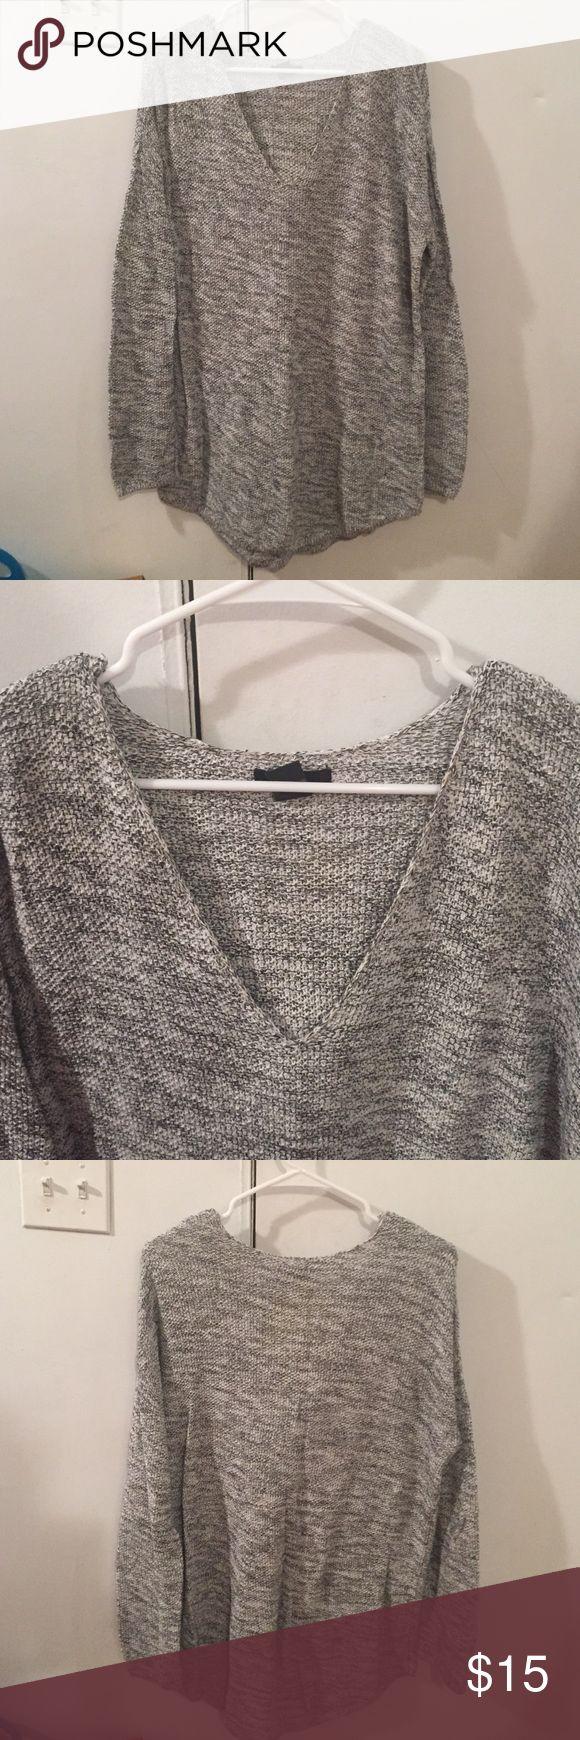 H&M Oversized Knit Sweater Knit Sweater. Cozy and comfortable! Great with leggings and boots. H&M Sweaters V-Necks